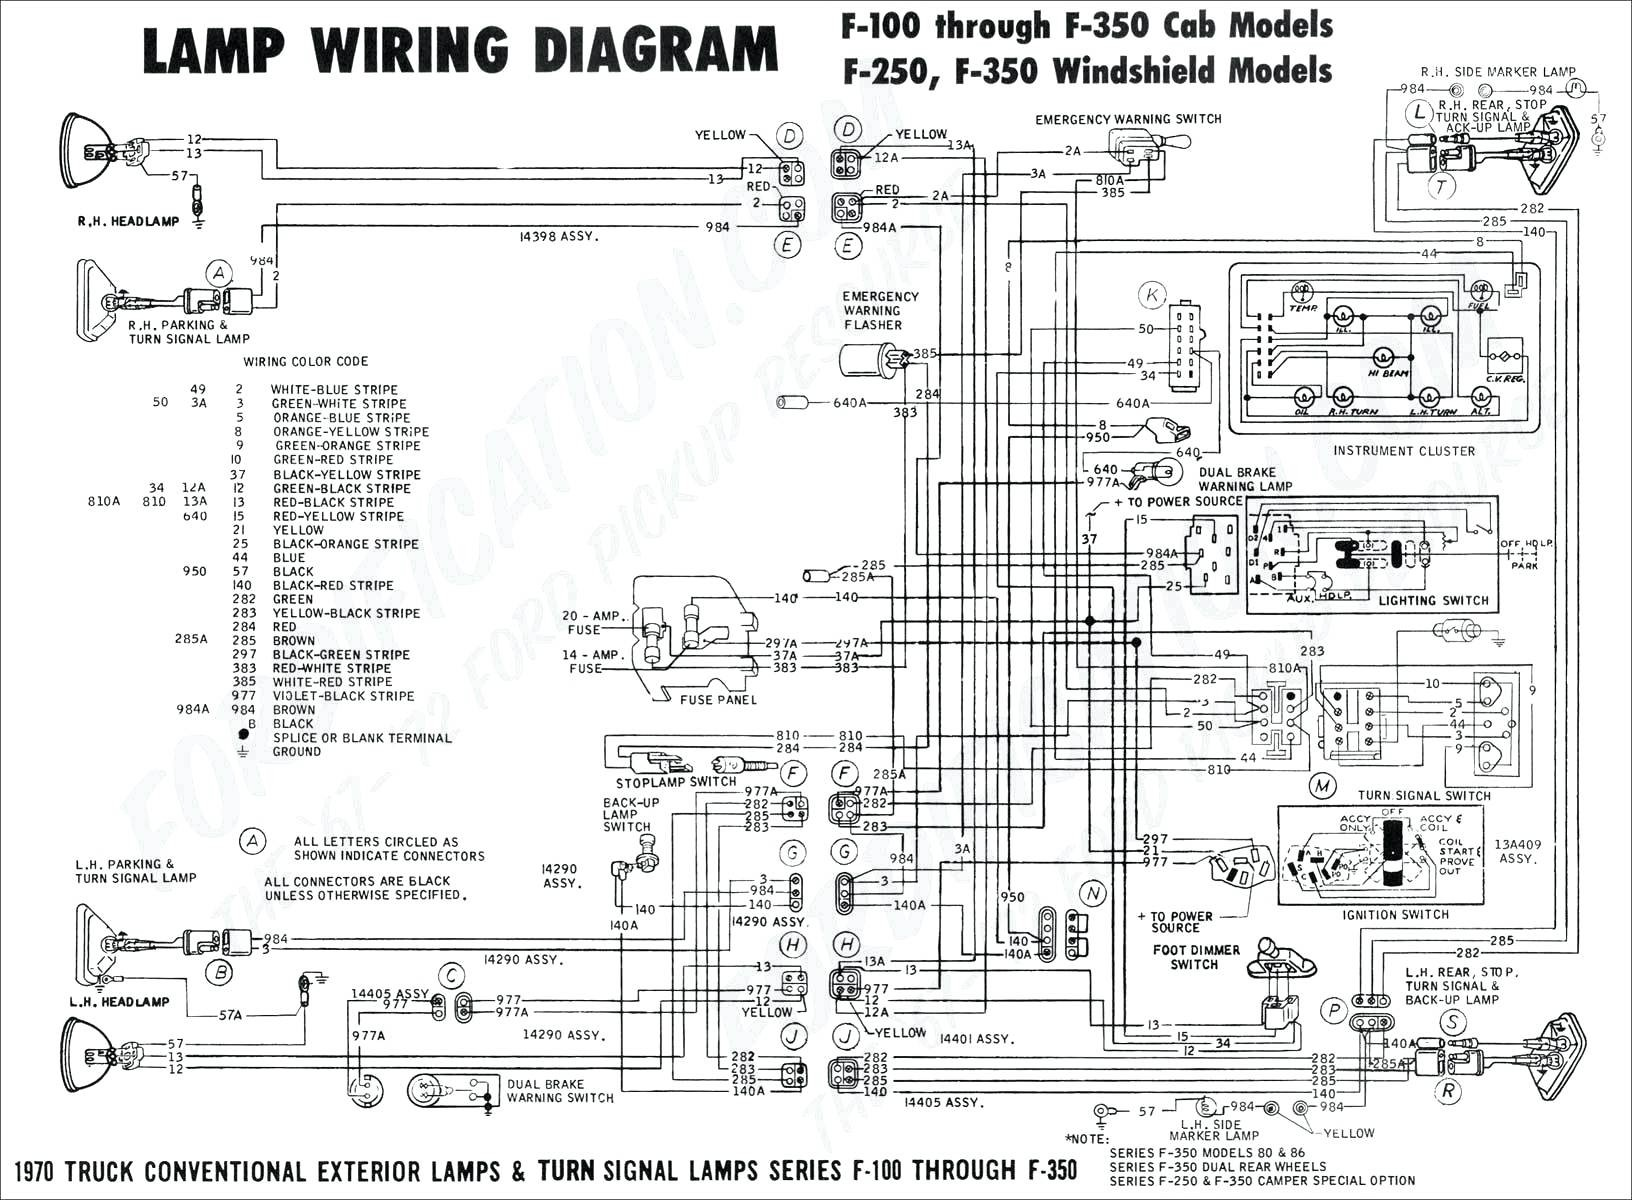 2003 dodge ram 2500 trailer wiring diagram thread 2005 dodge ram wiring diagram wire center u2022 rh inspeere co 1c